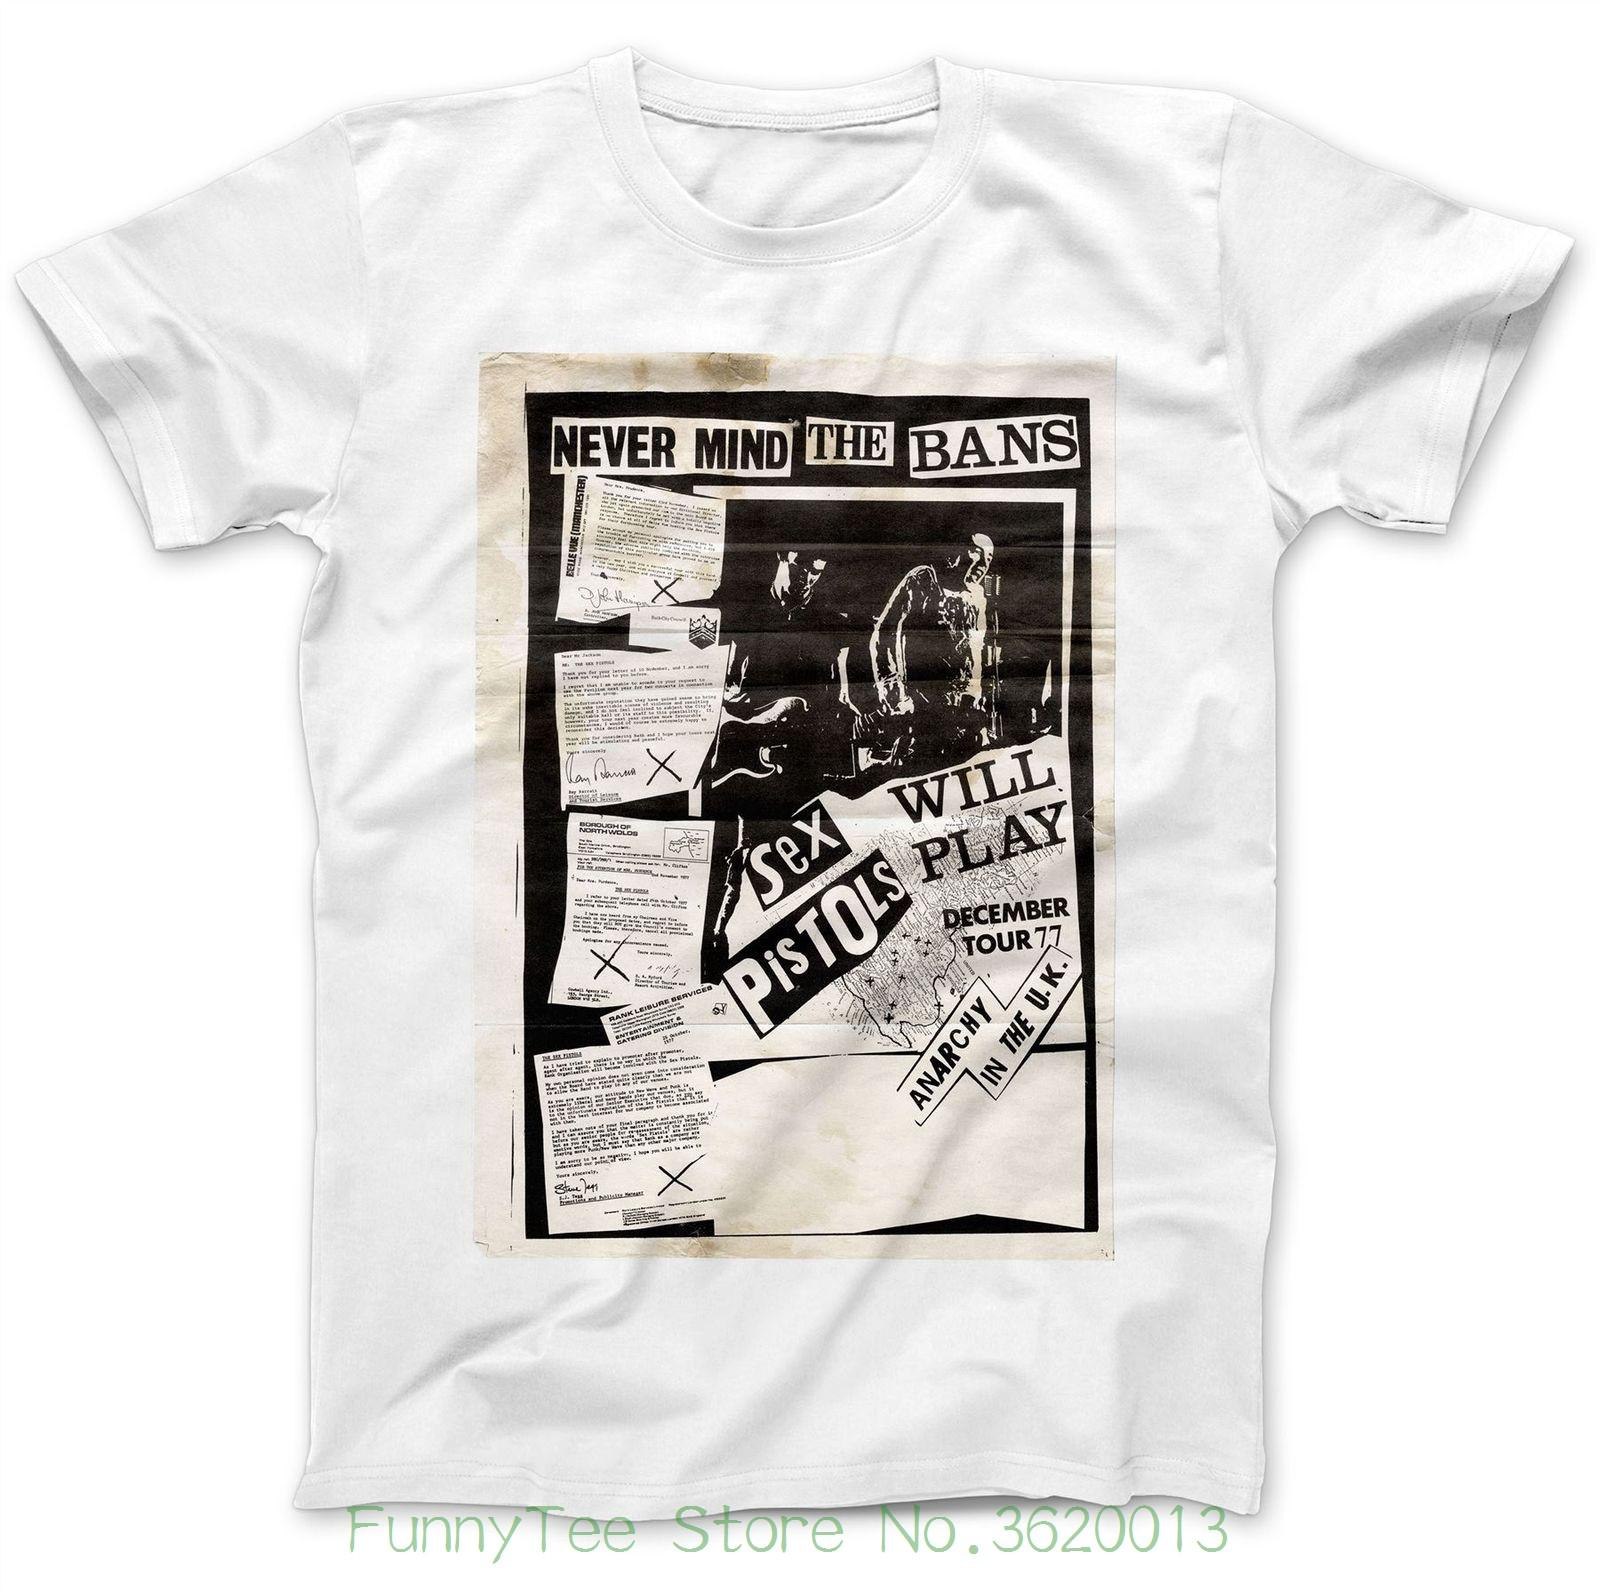 96c31b49186 Never Mind The Bans Anarchy In The Uk T Shirt 100% Discount Wholesale  Cotton Pistols Coolest T Shirts Online Buy Shirt Designs From Cooldaystore